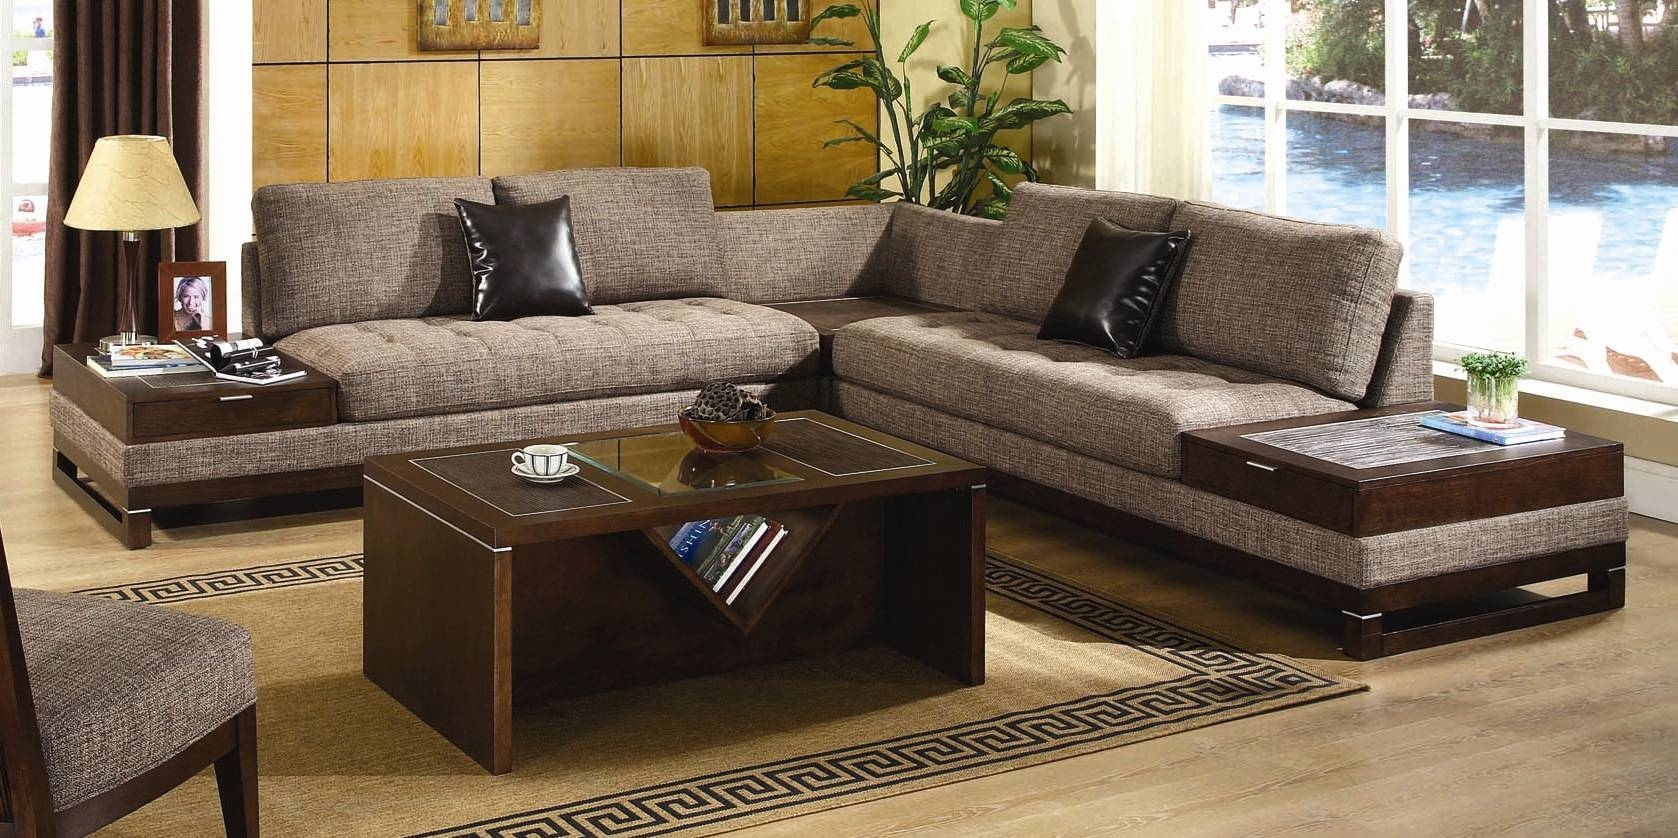 Living Room: Couches And Sofas | Walmart Reclining Sofa | Walmart regarding Living Room Sofa And Chair Sets (Image 10 of 15)